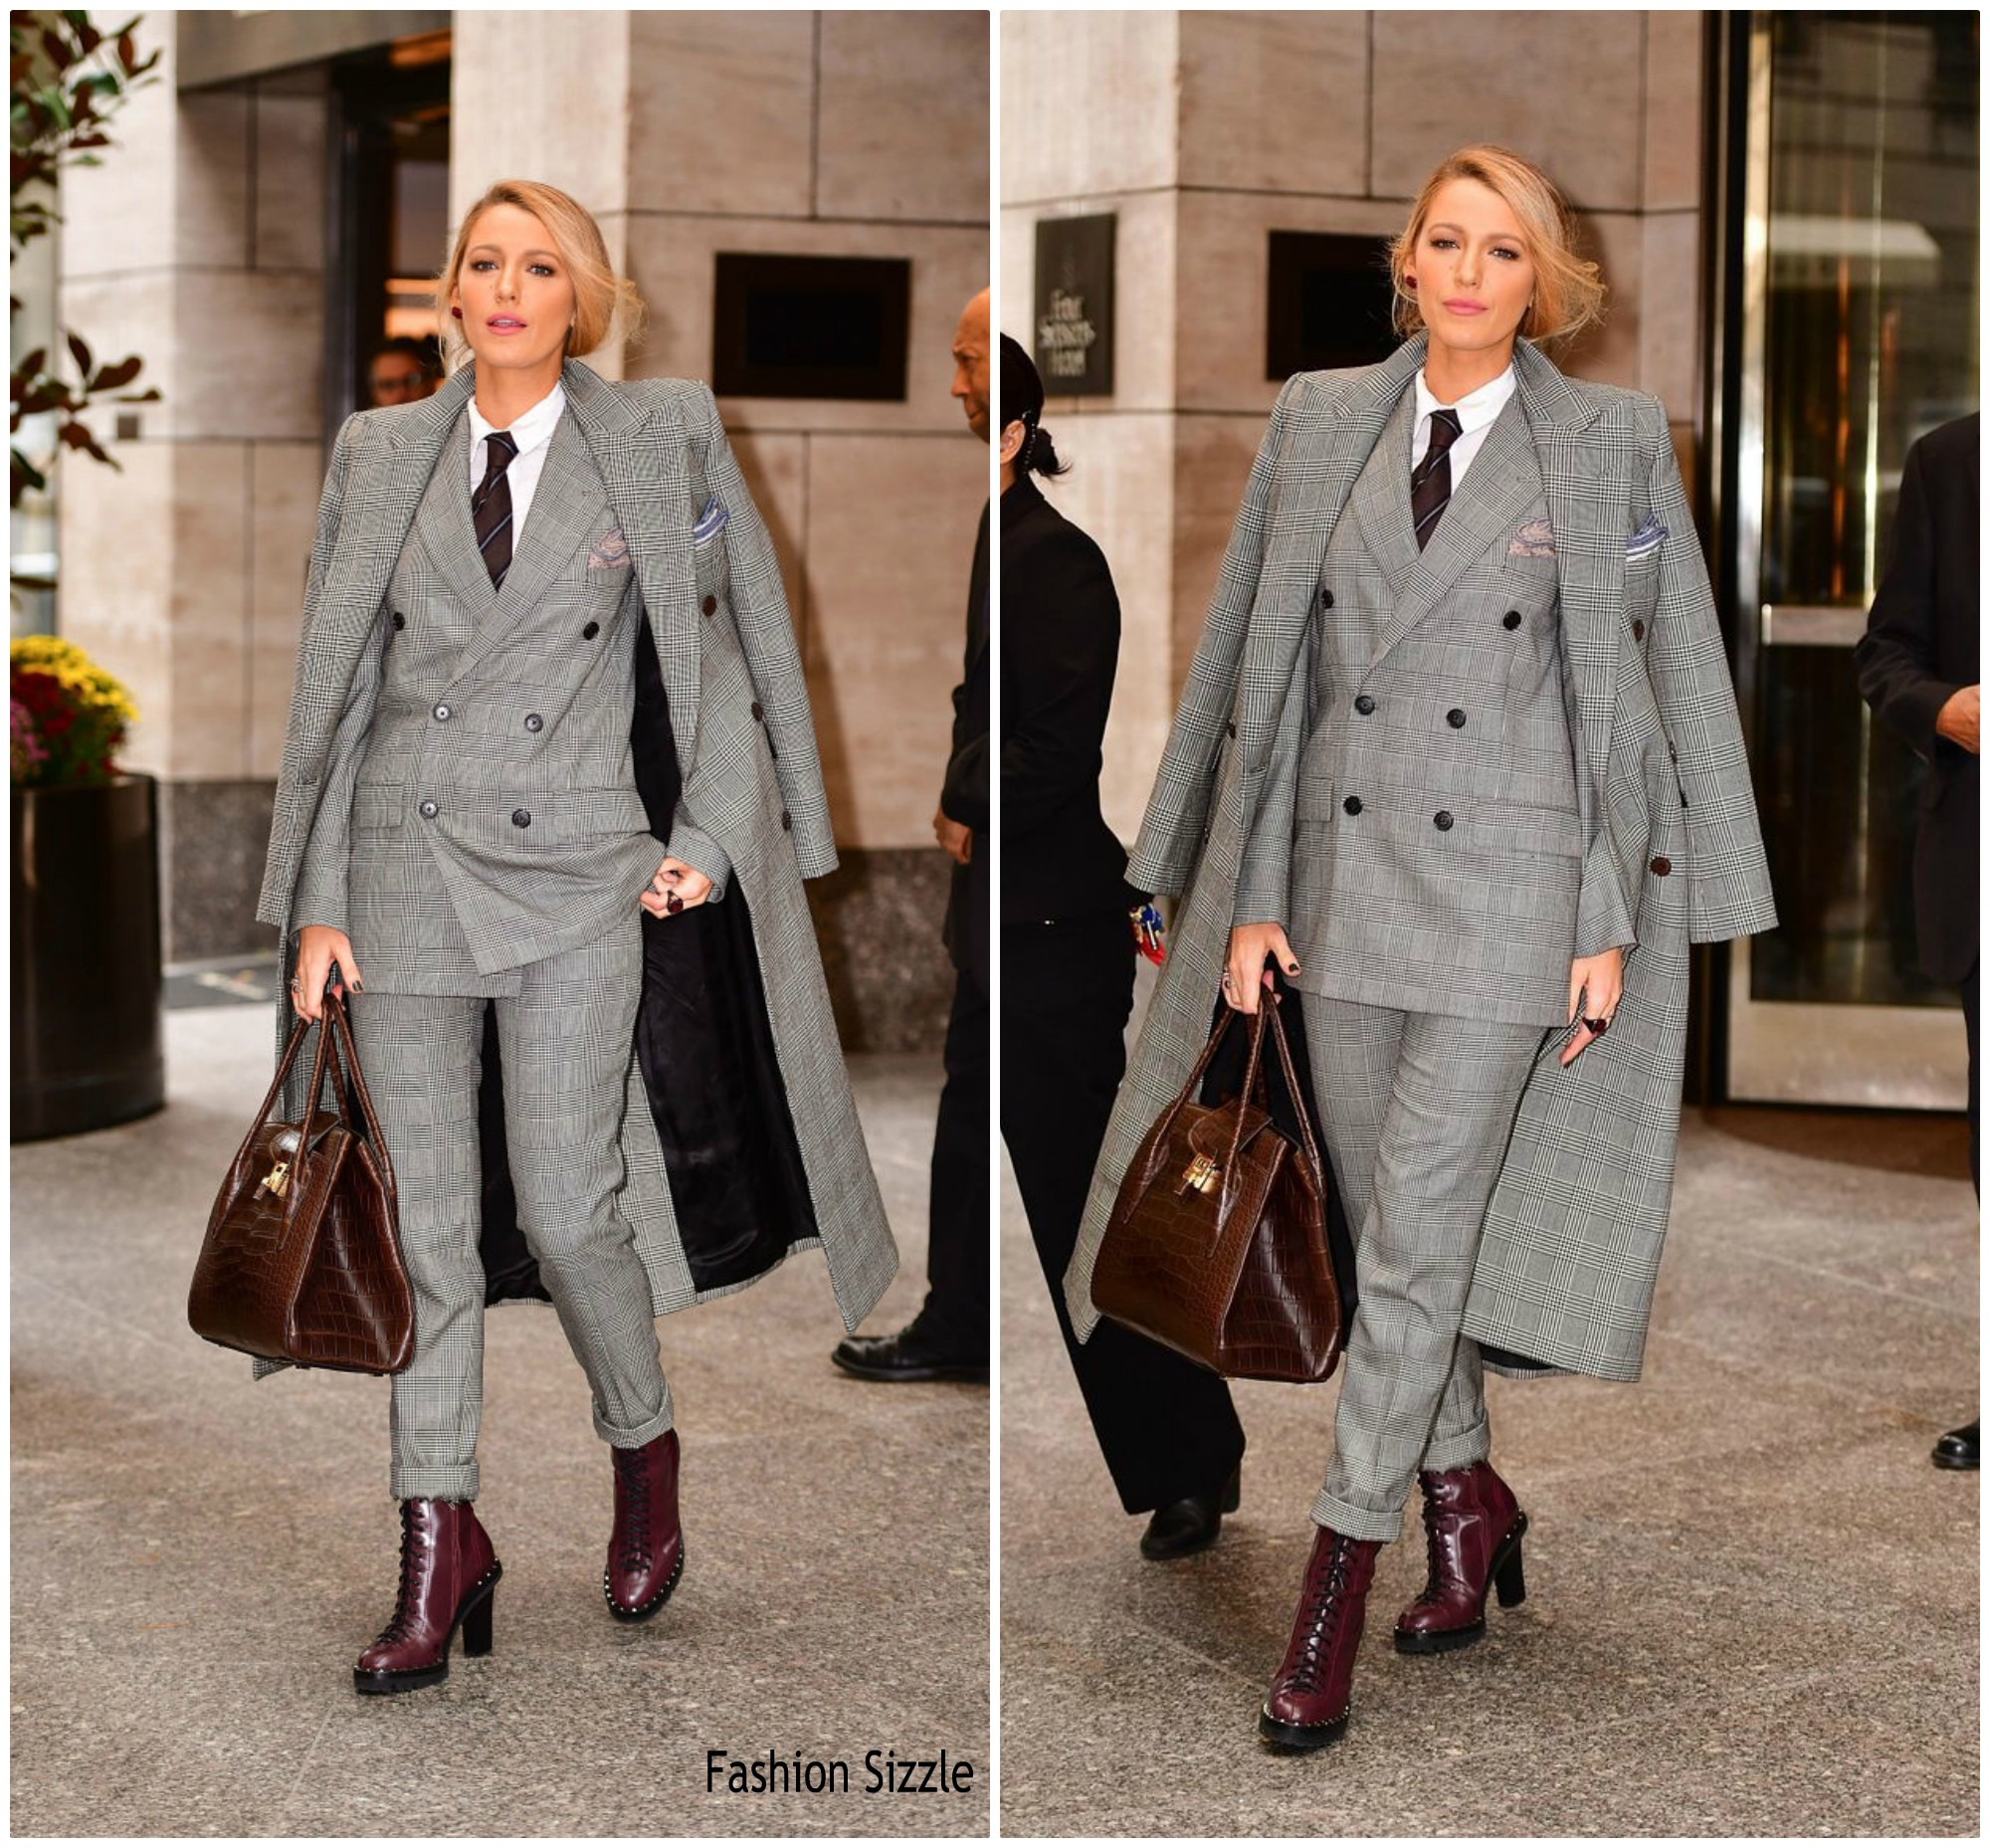 blake-lively-in-ralph-lauren-all-i-see-is-you- promo-in- newyork